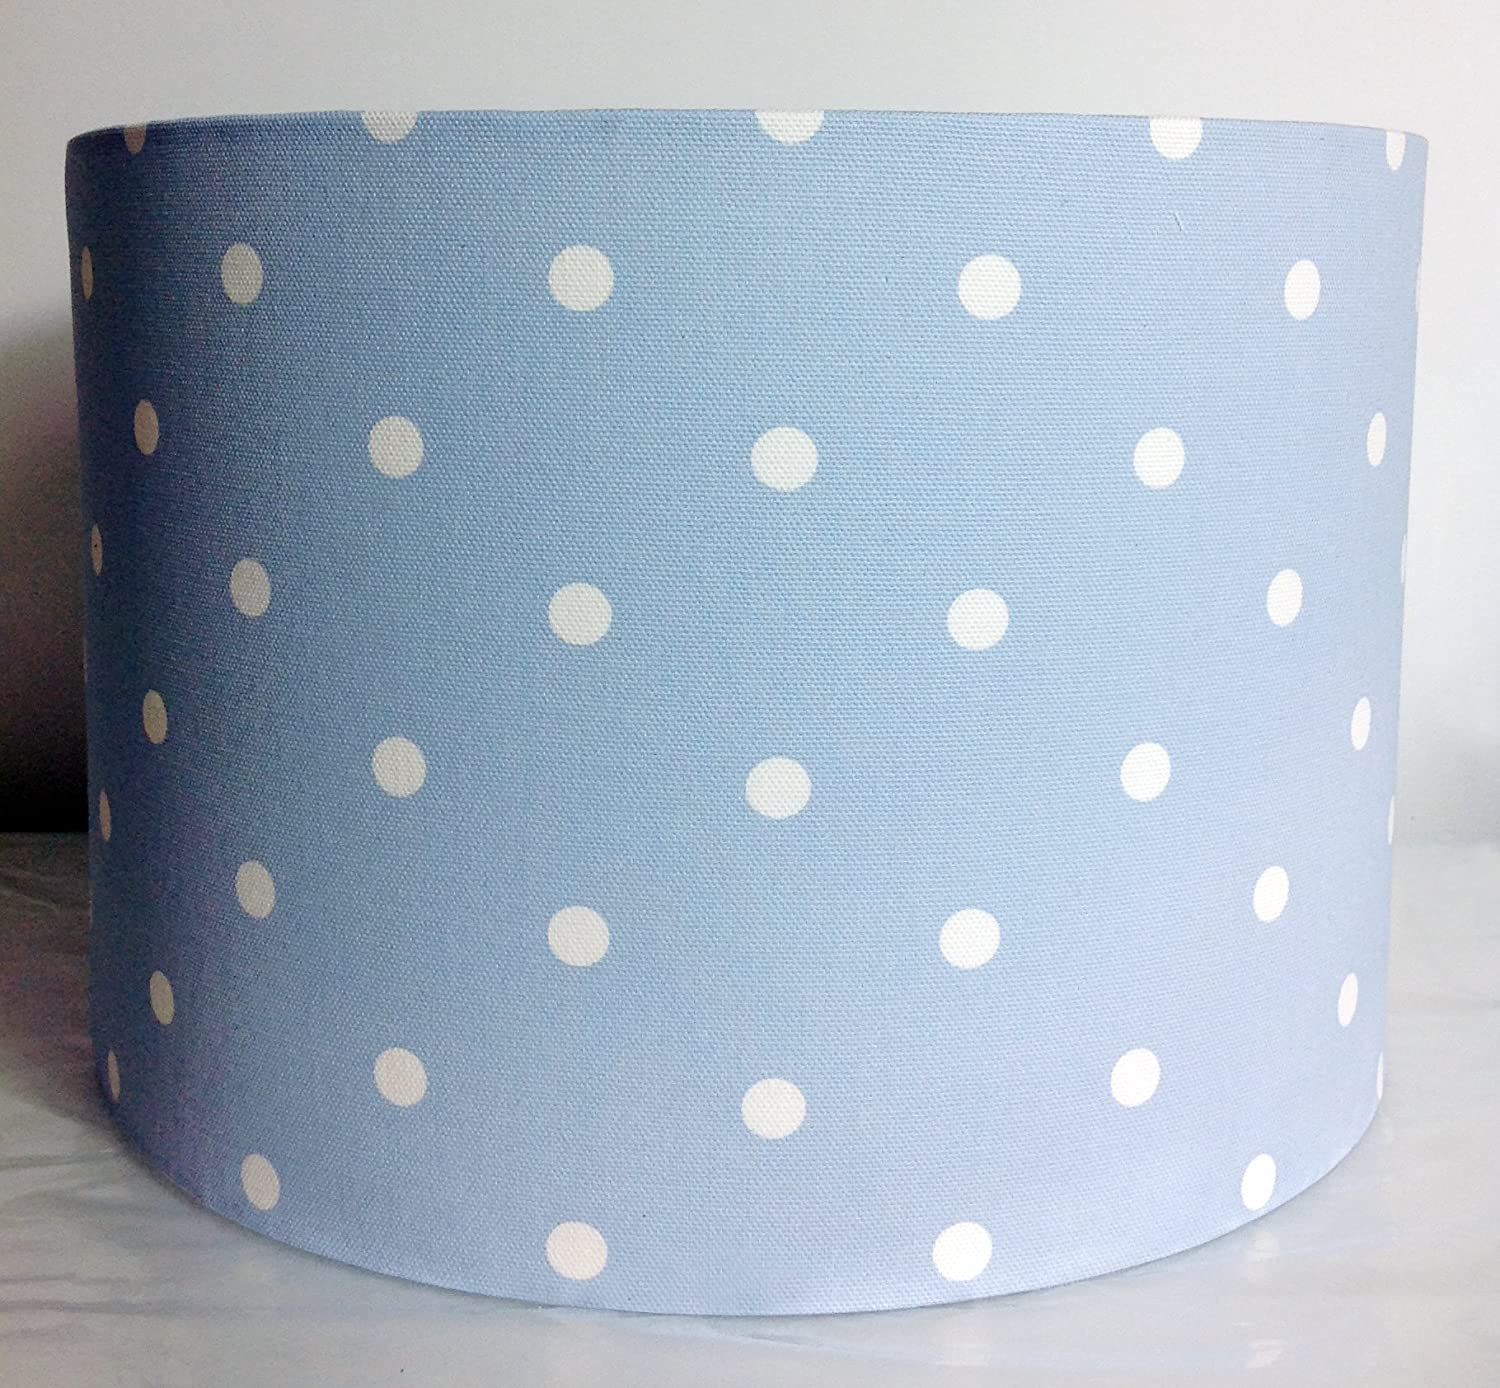 BABY BLUE POLKA DOT LIGHT LAMP SHADE: Amazon.co.uk: Lighting